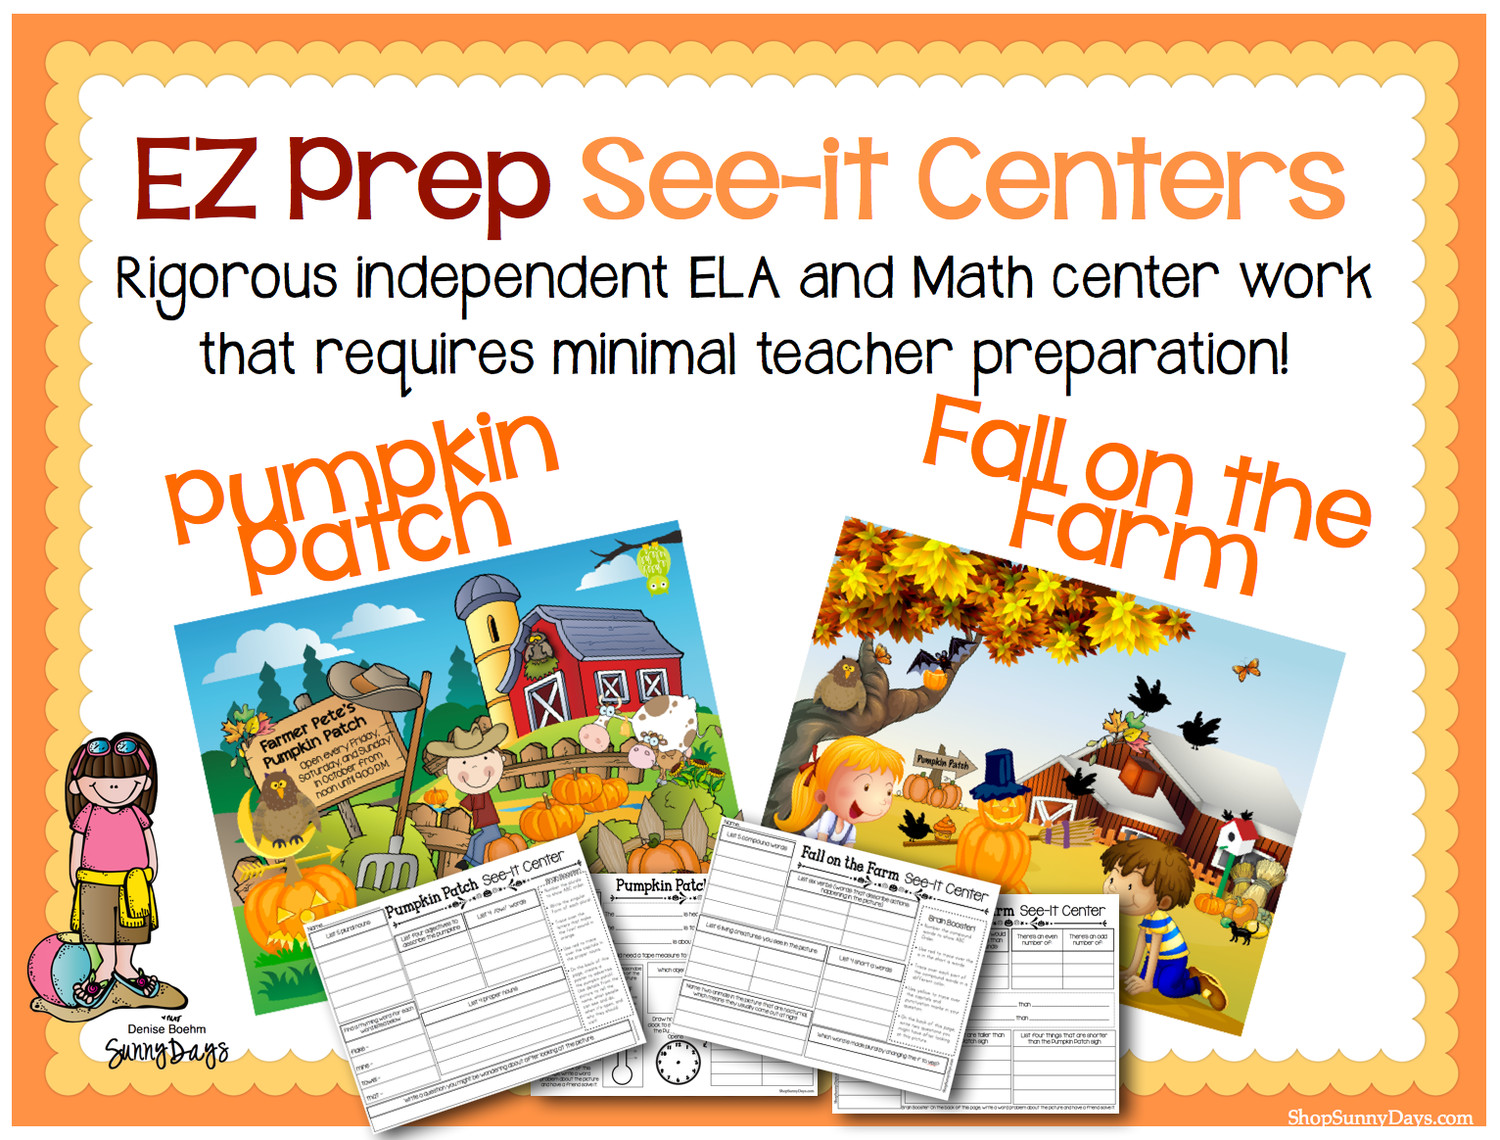 EZ Prep See-it Center for Fall